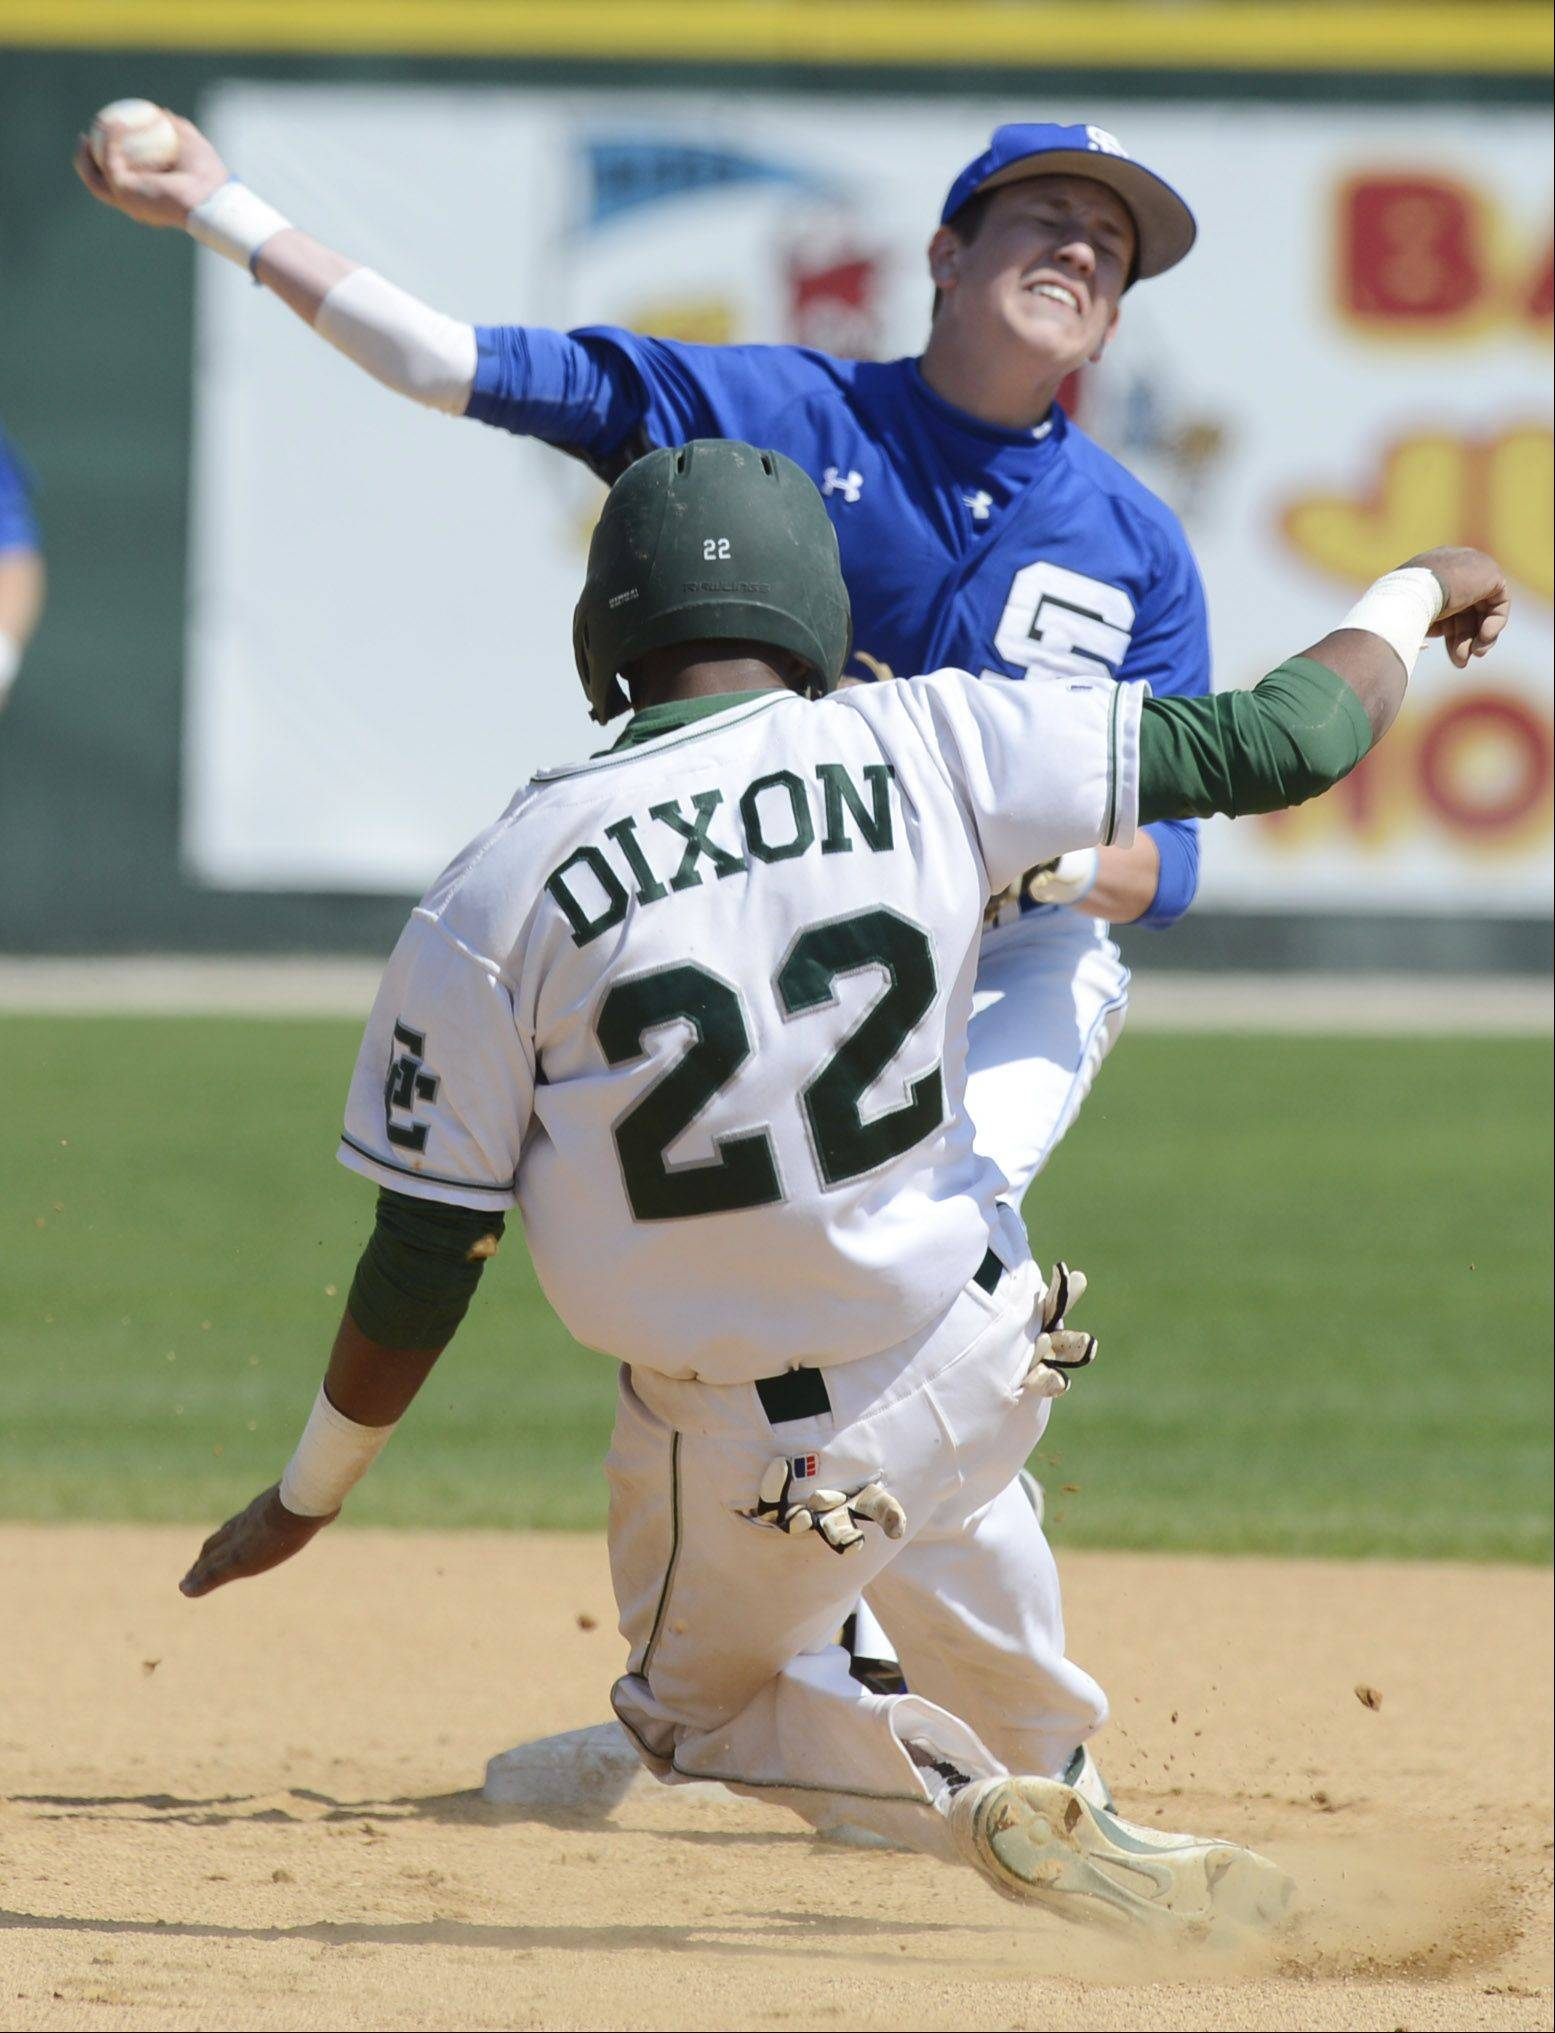 St. Francis' Jack Ciombor makes the throw as Grayslake Central's Sterling Dixon slides into second during Friday's Class 3A state baseball tournament at Silver Cross Field in Joliet.